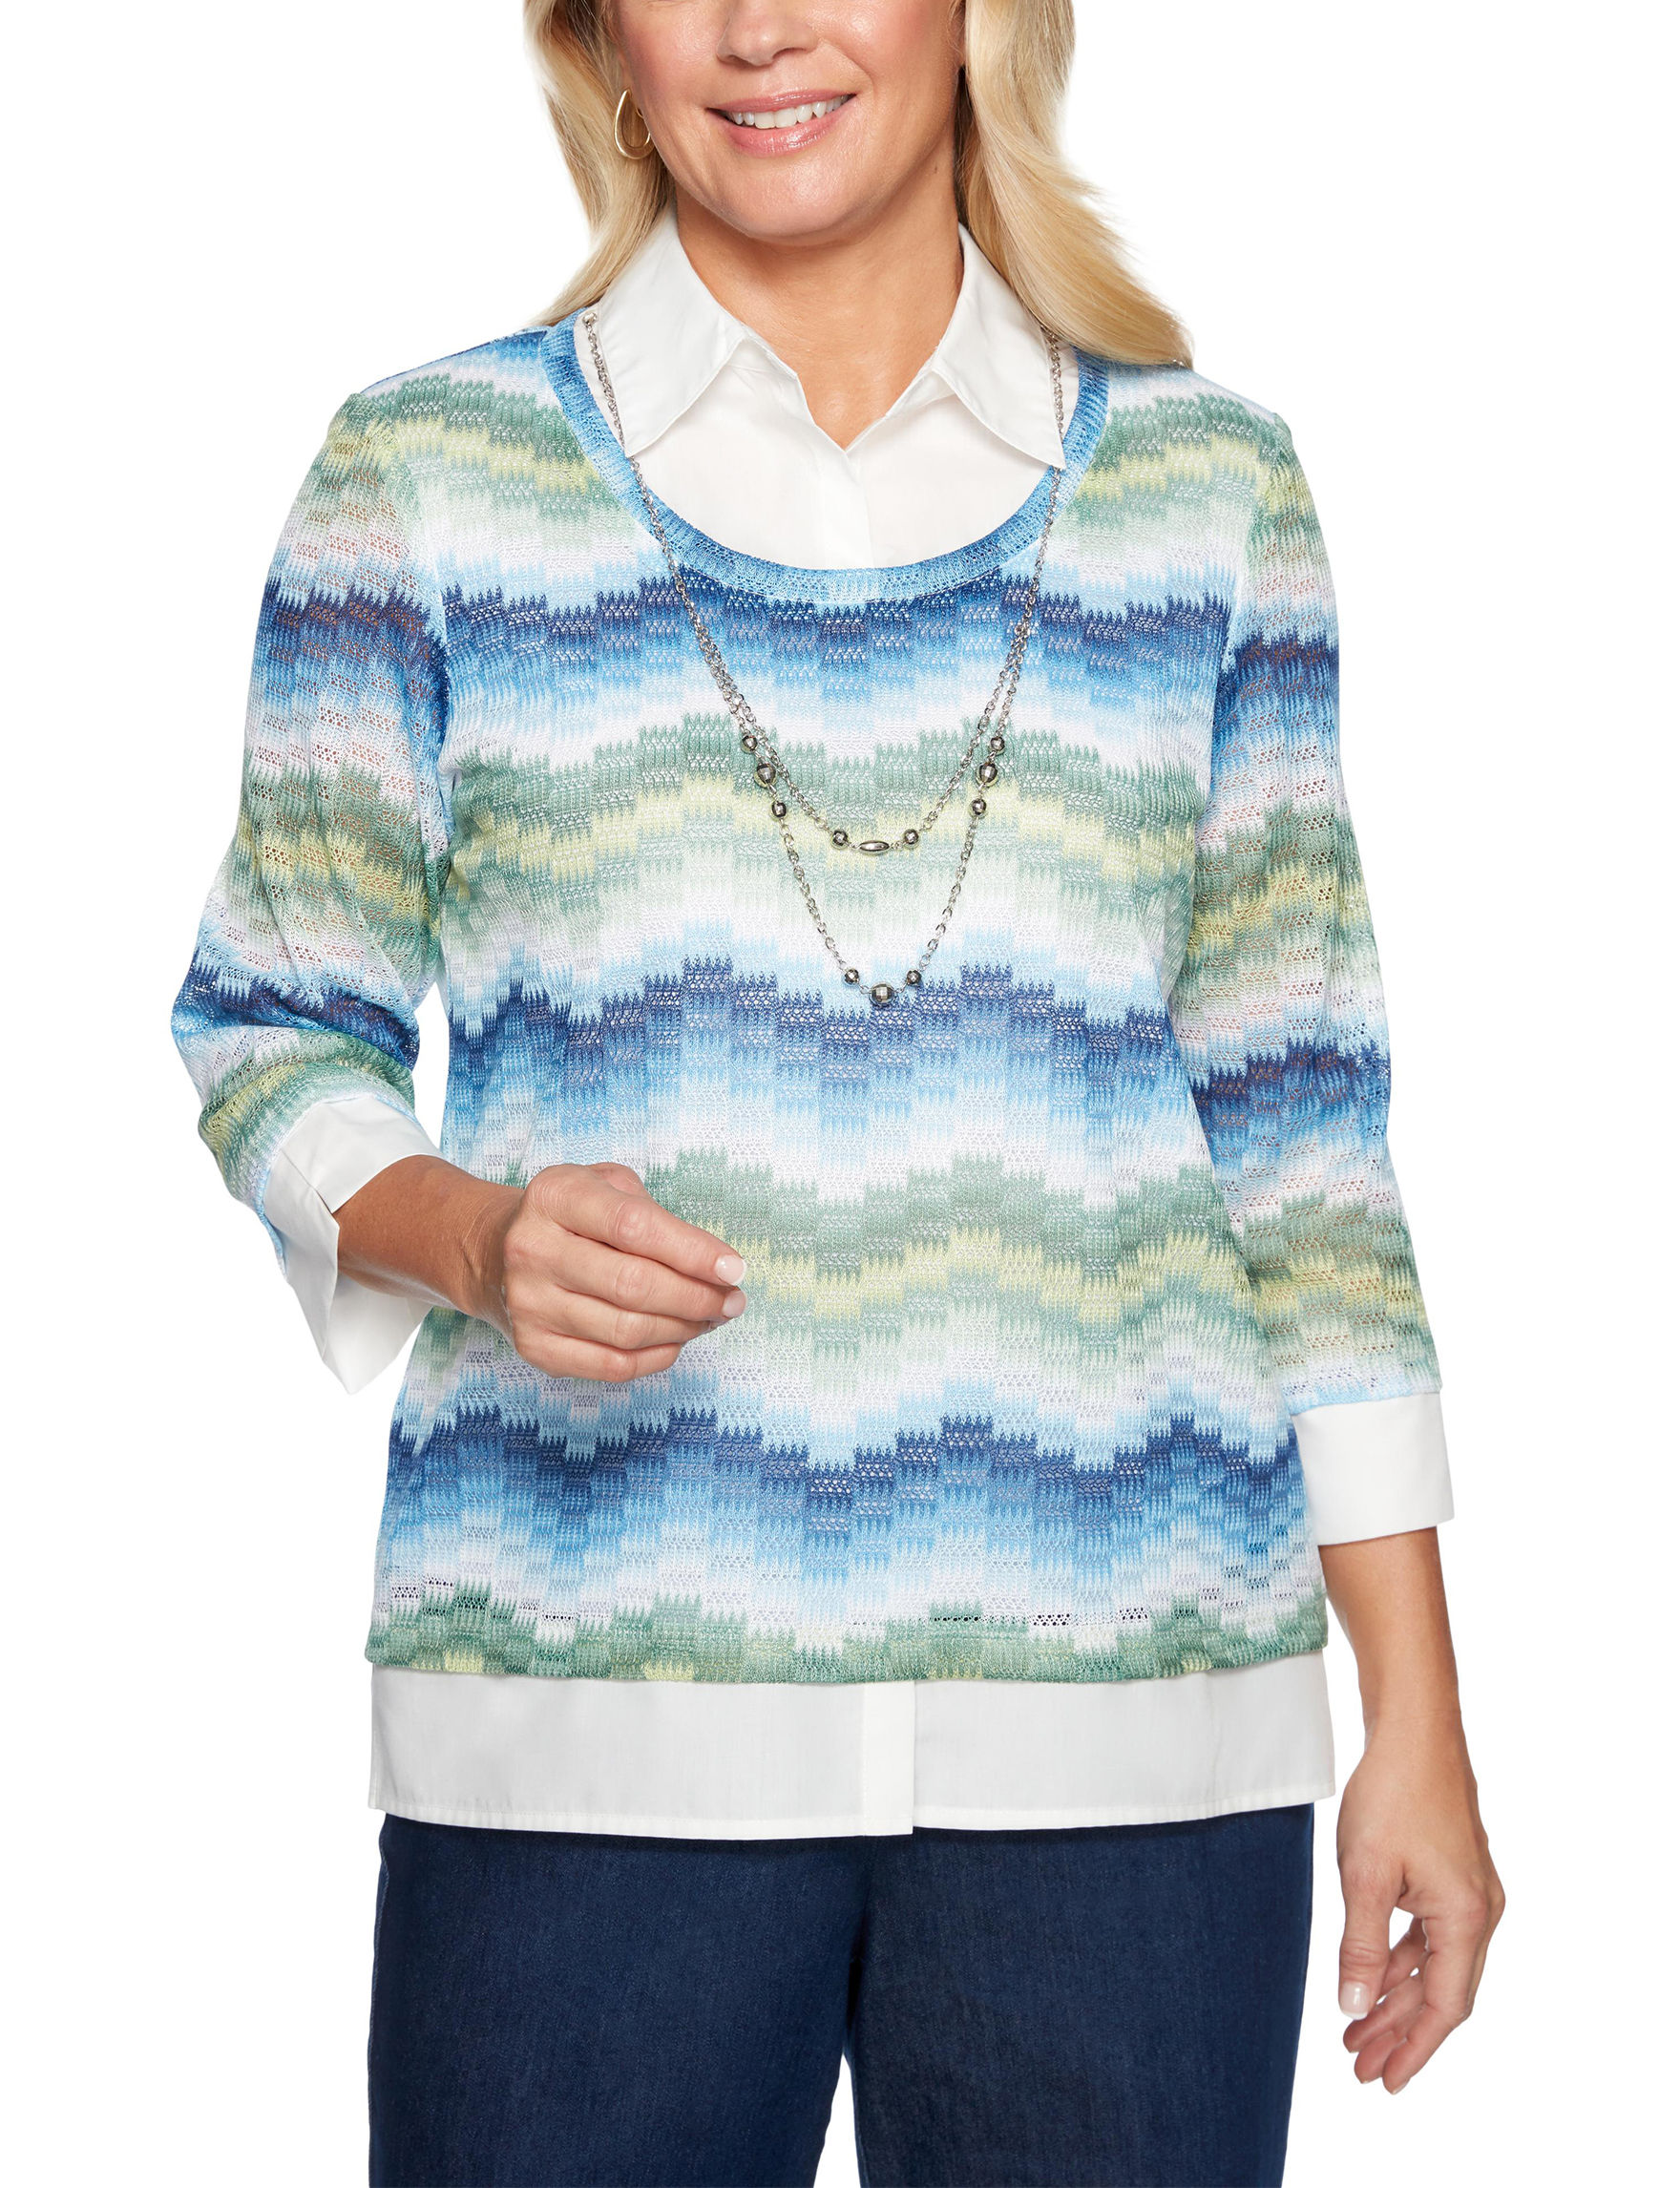 Alfred Dunner White Multi Pull-overs Shirts & Blouses